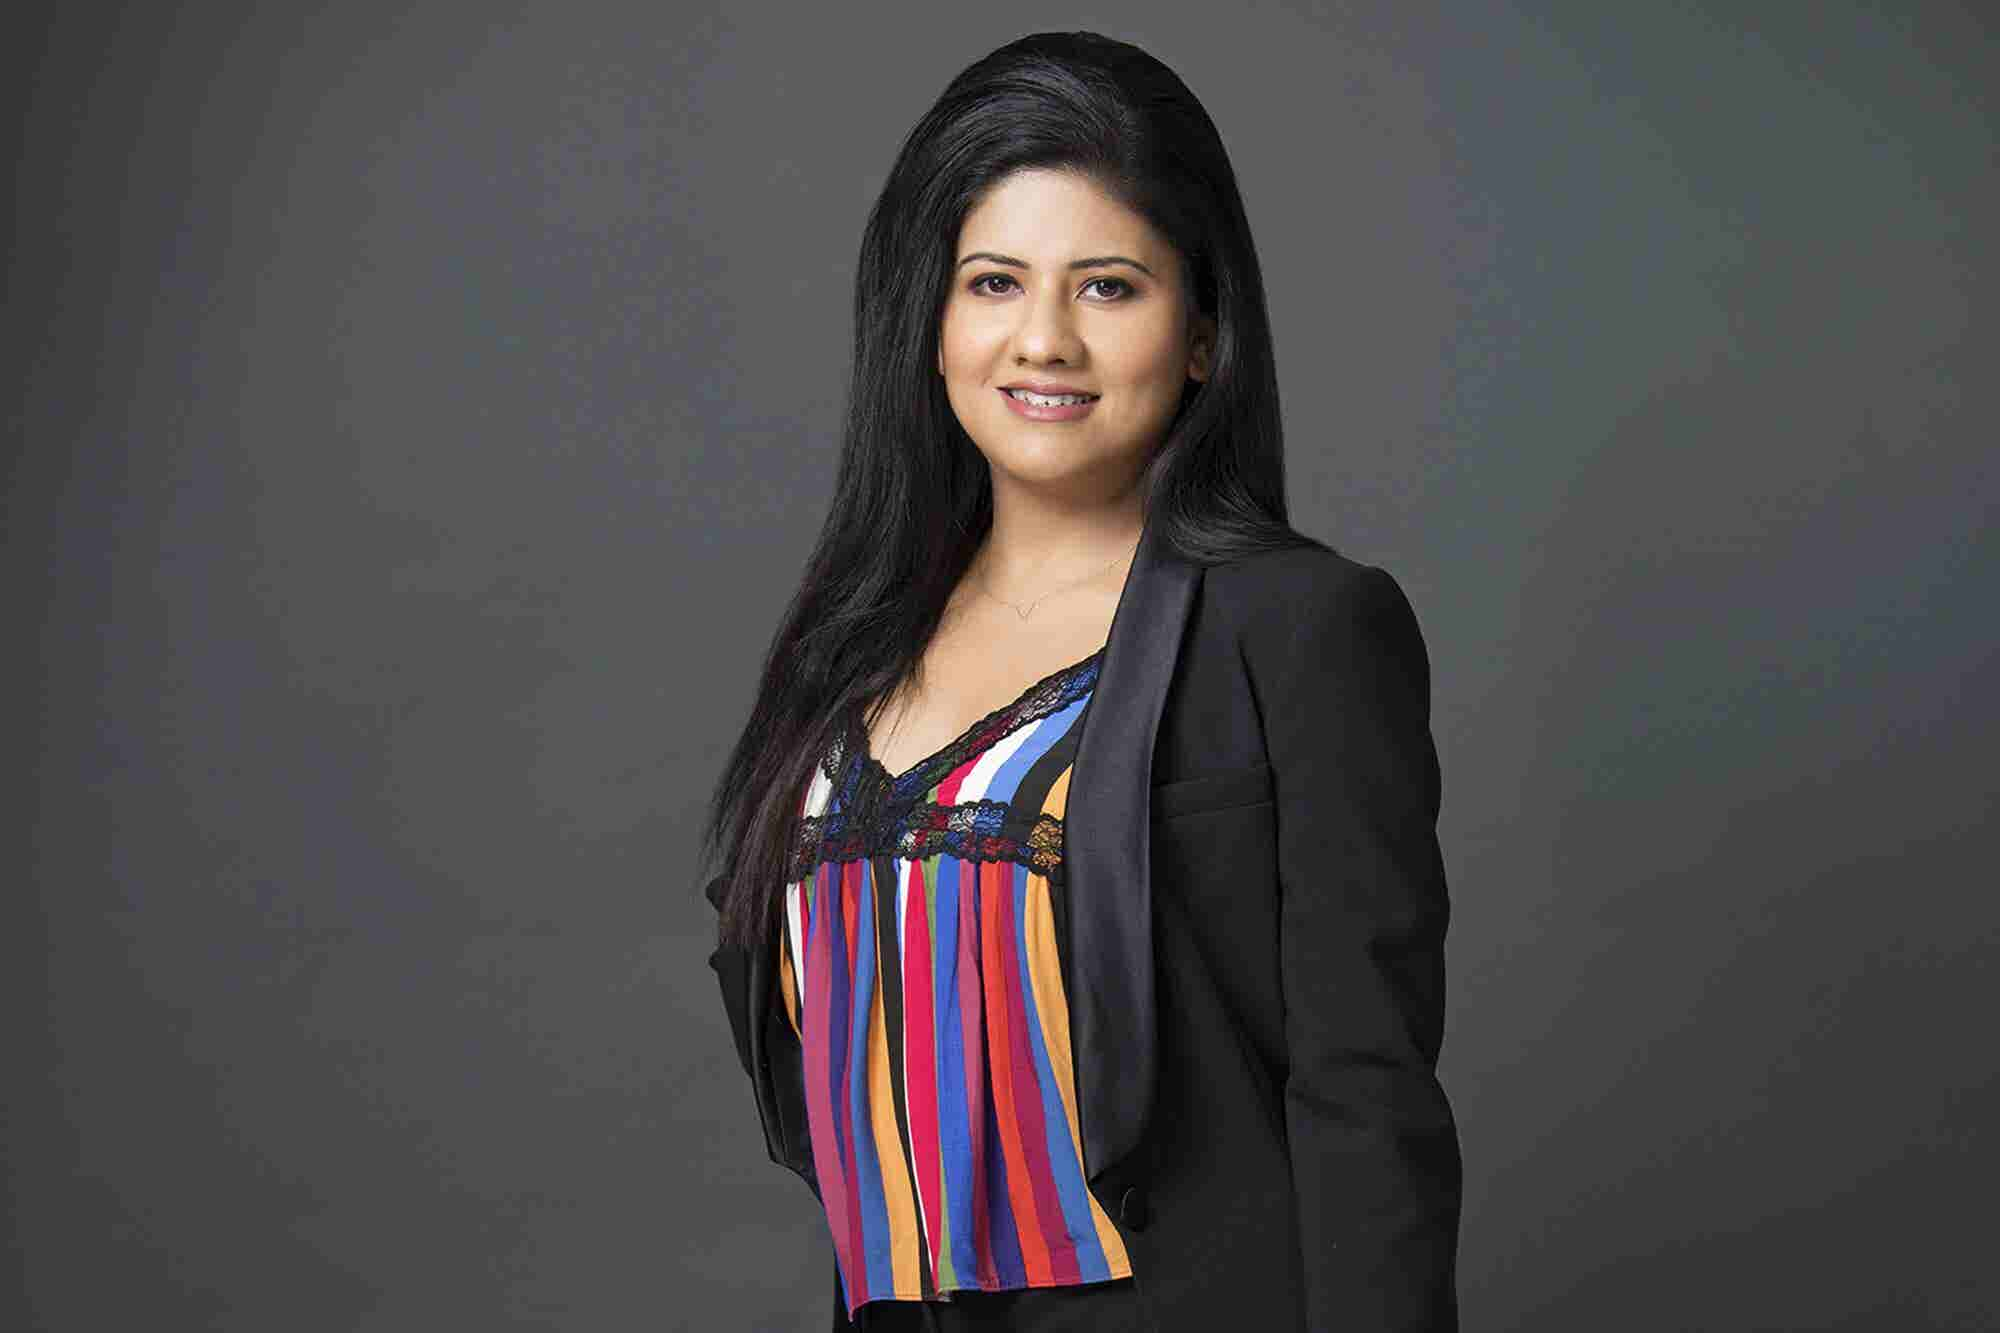 The Founder of This Bollywood Gossip Website Missed Her Daily Dose When She Moved to the US, So She Decided to Start Her Own